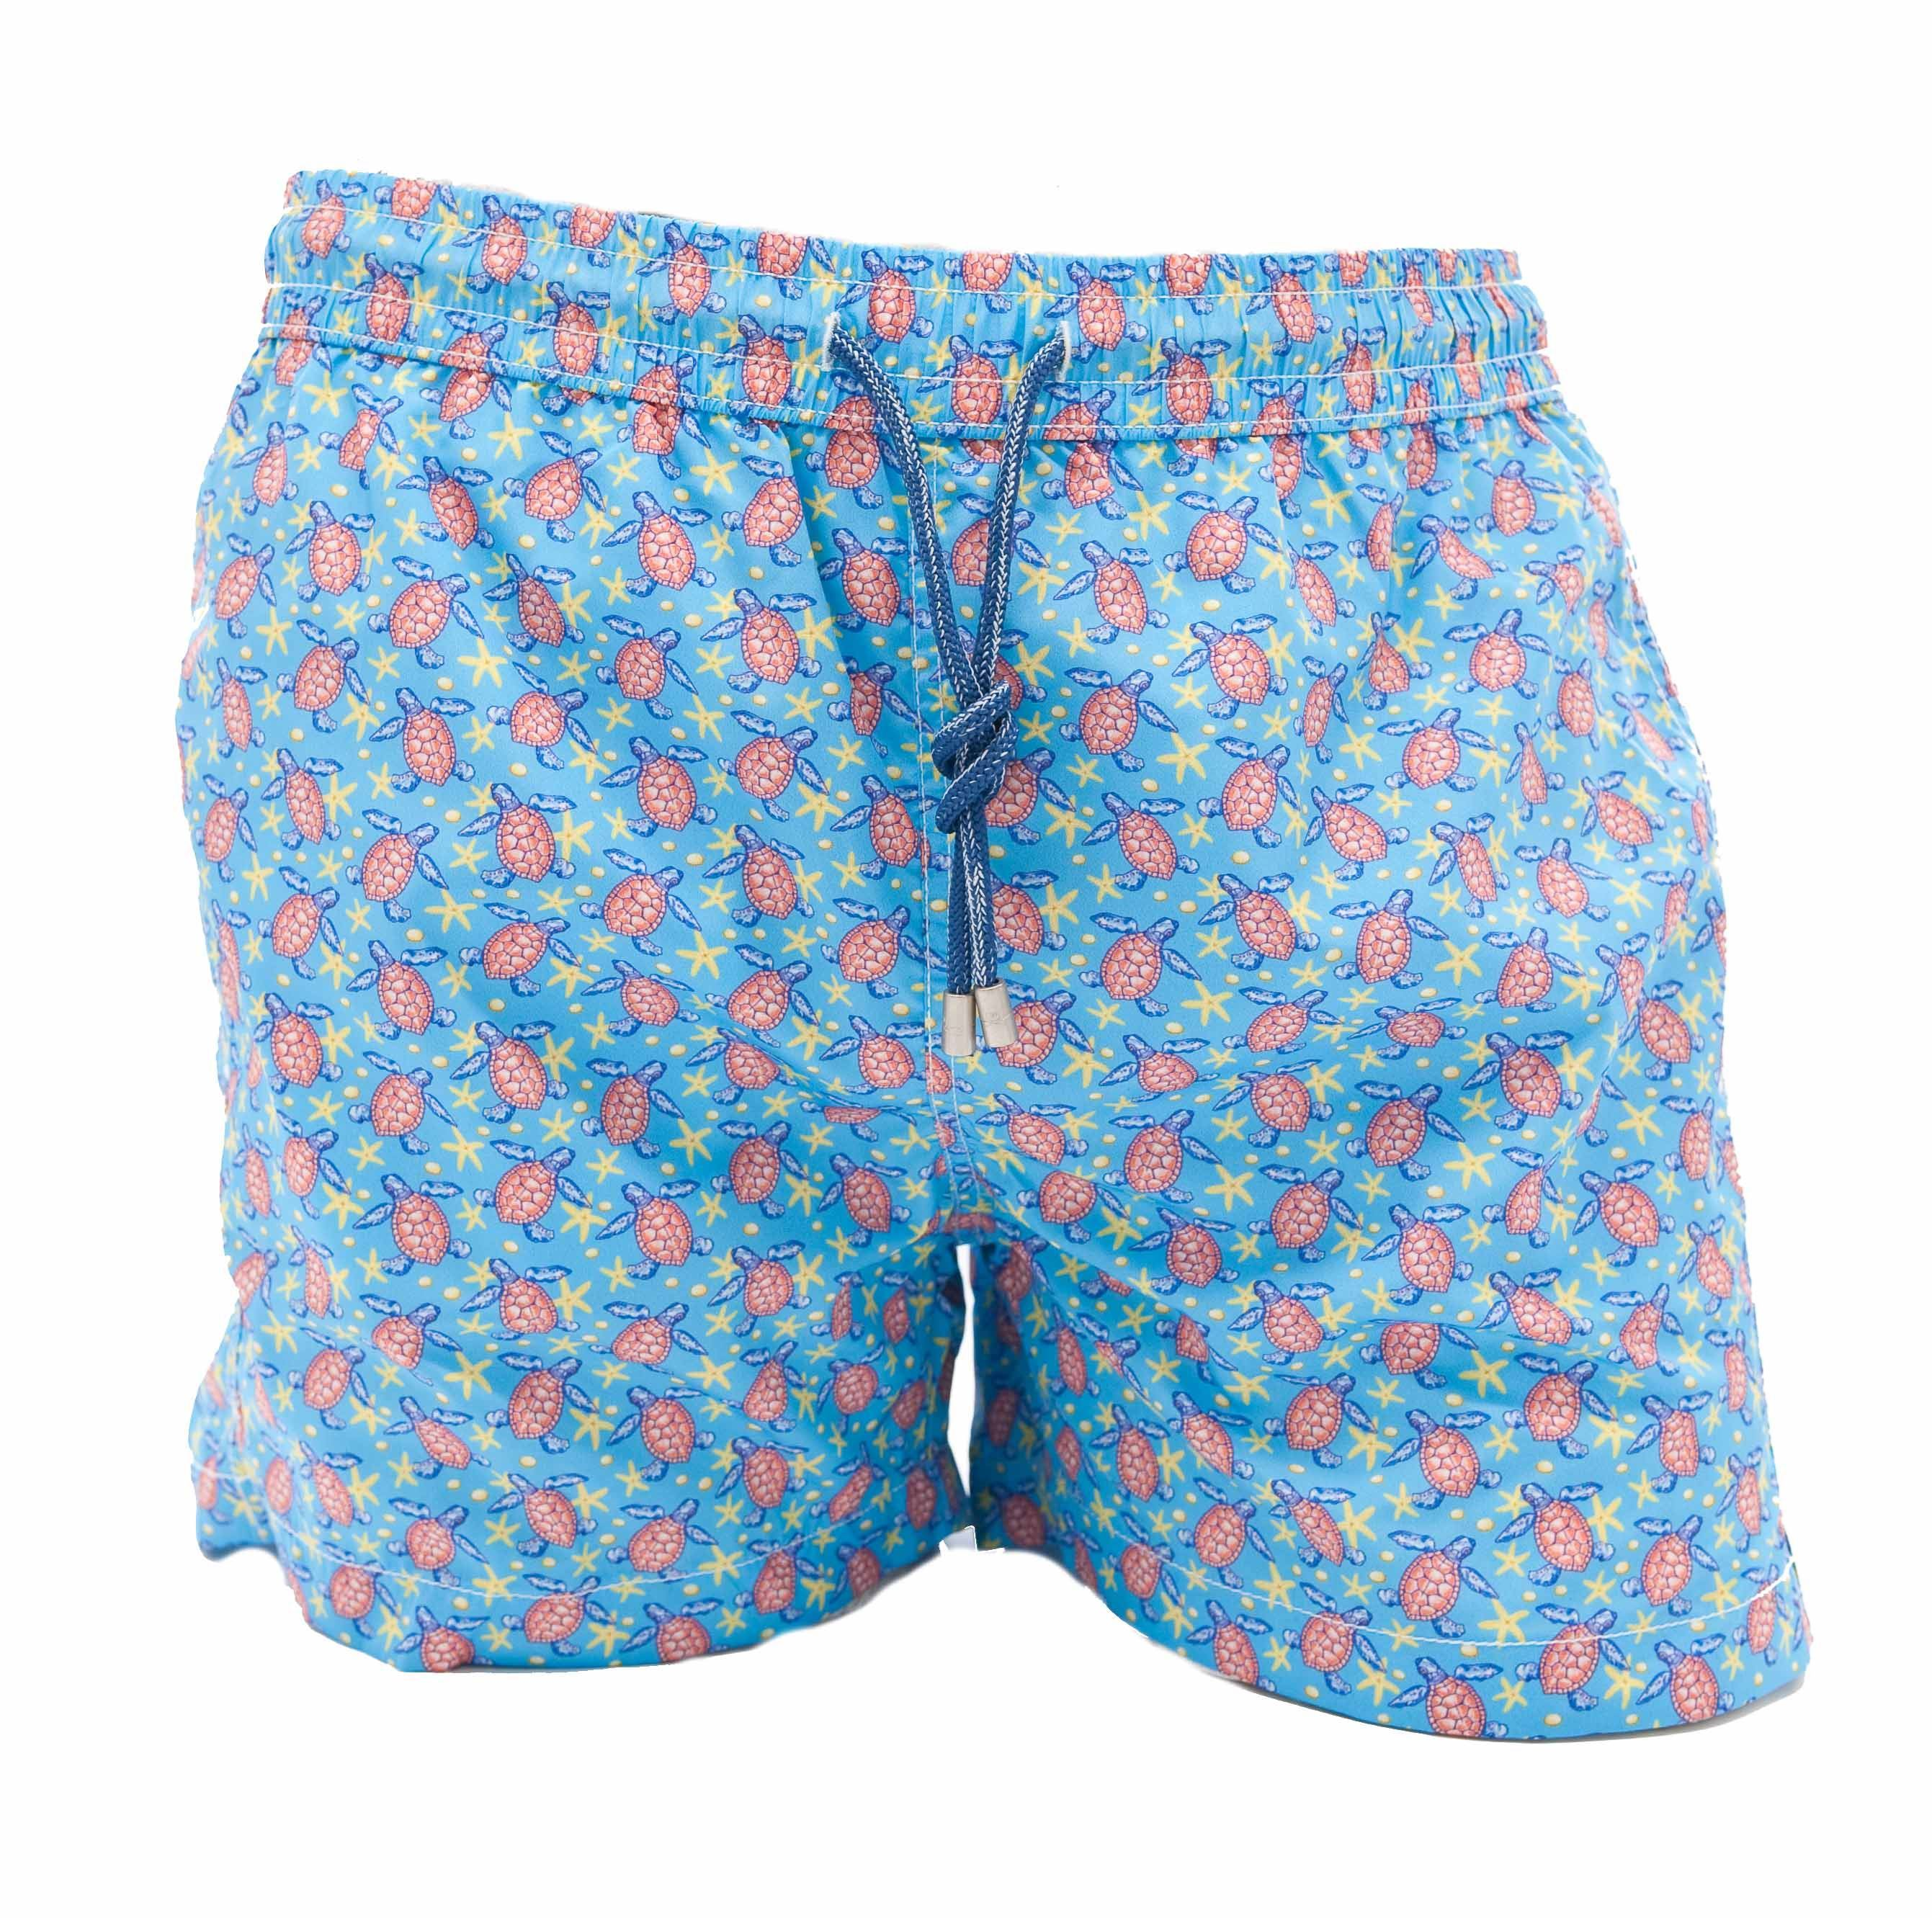 Picture of boxer swimming trunks with turtle pattern